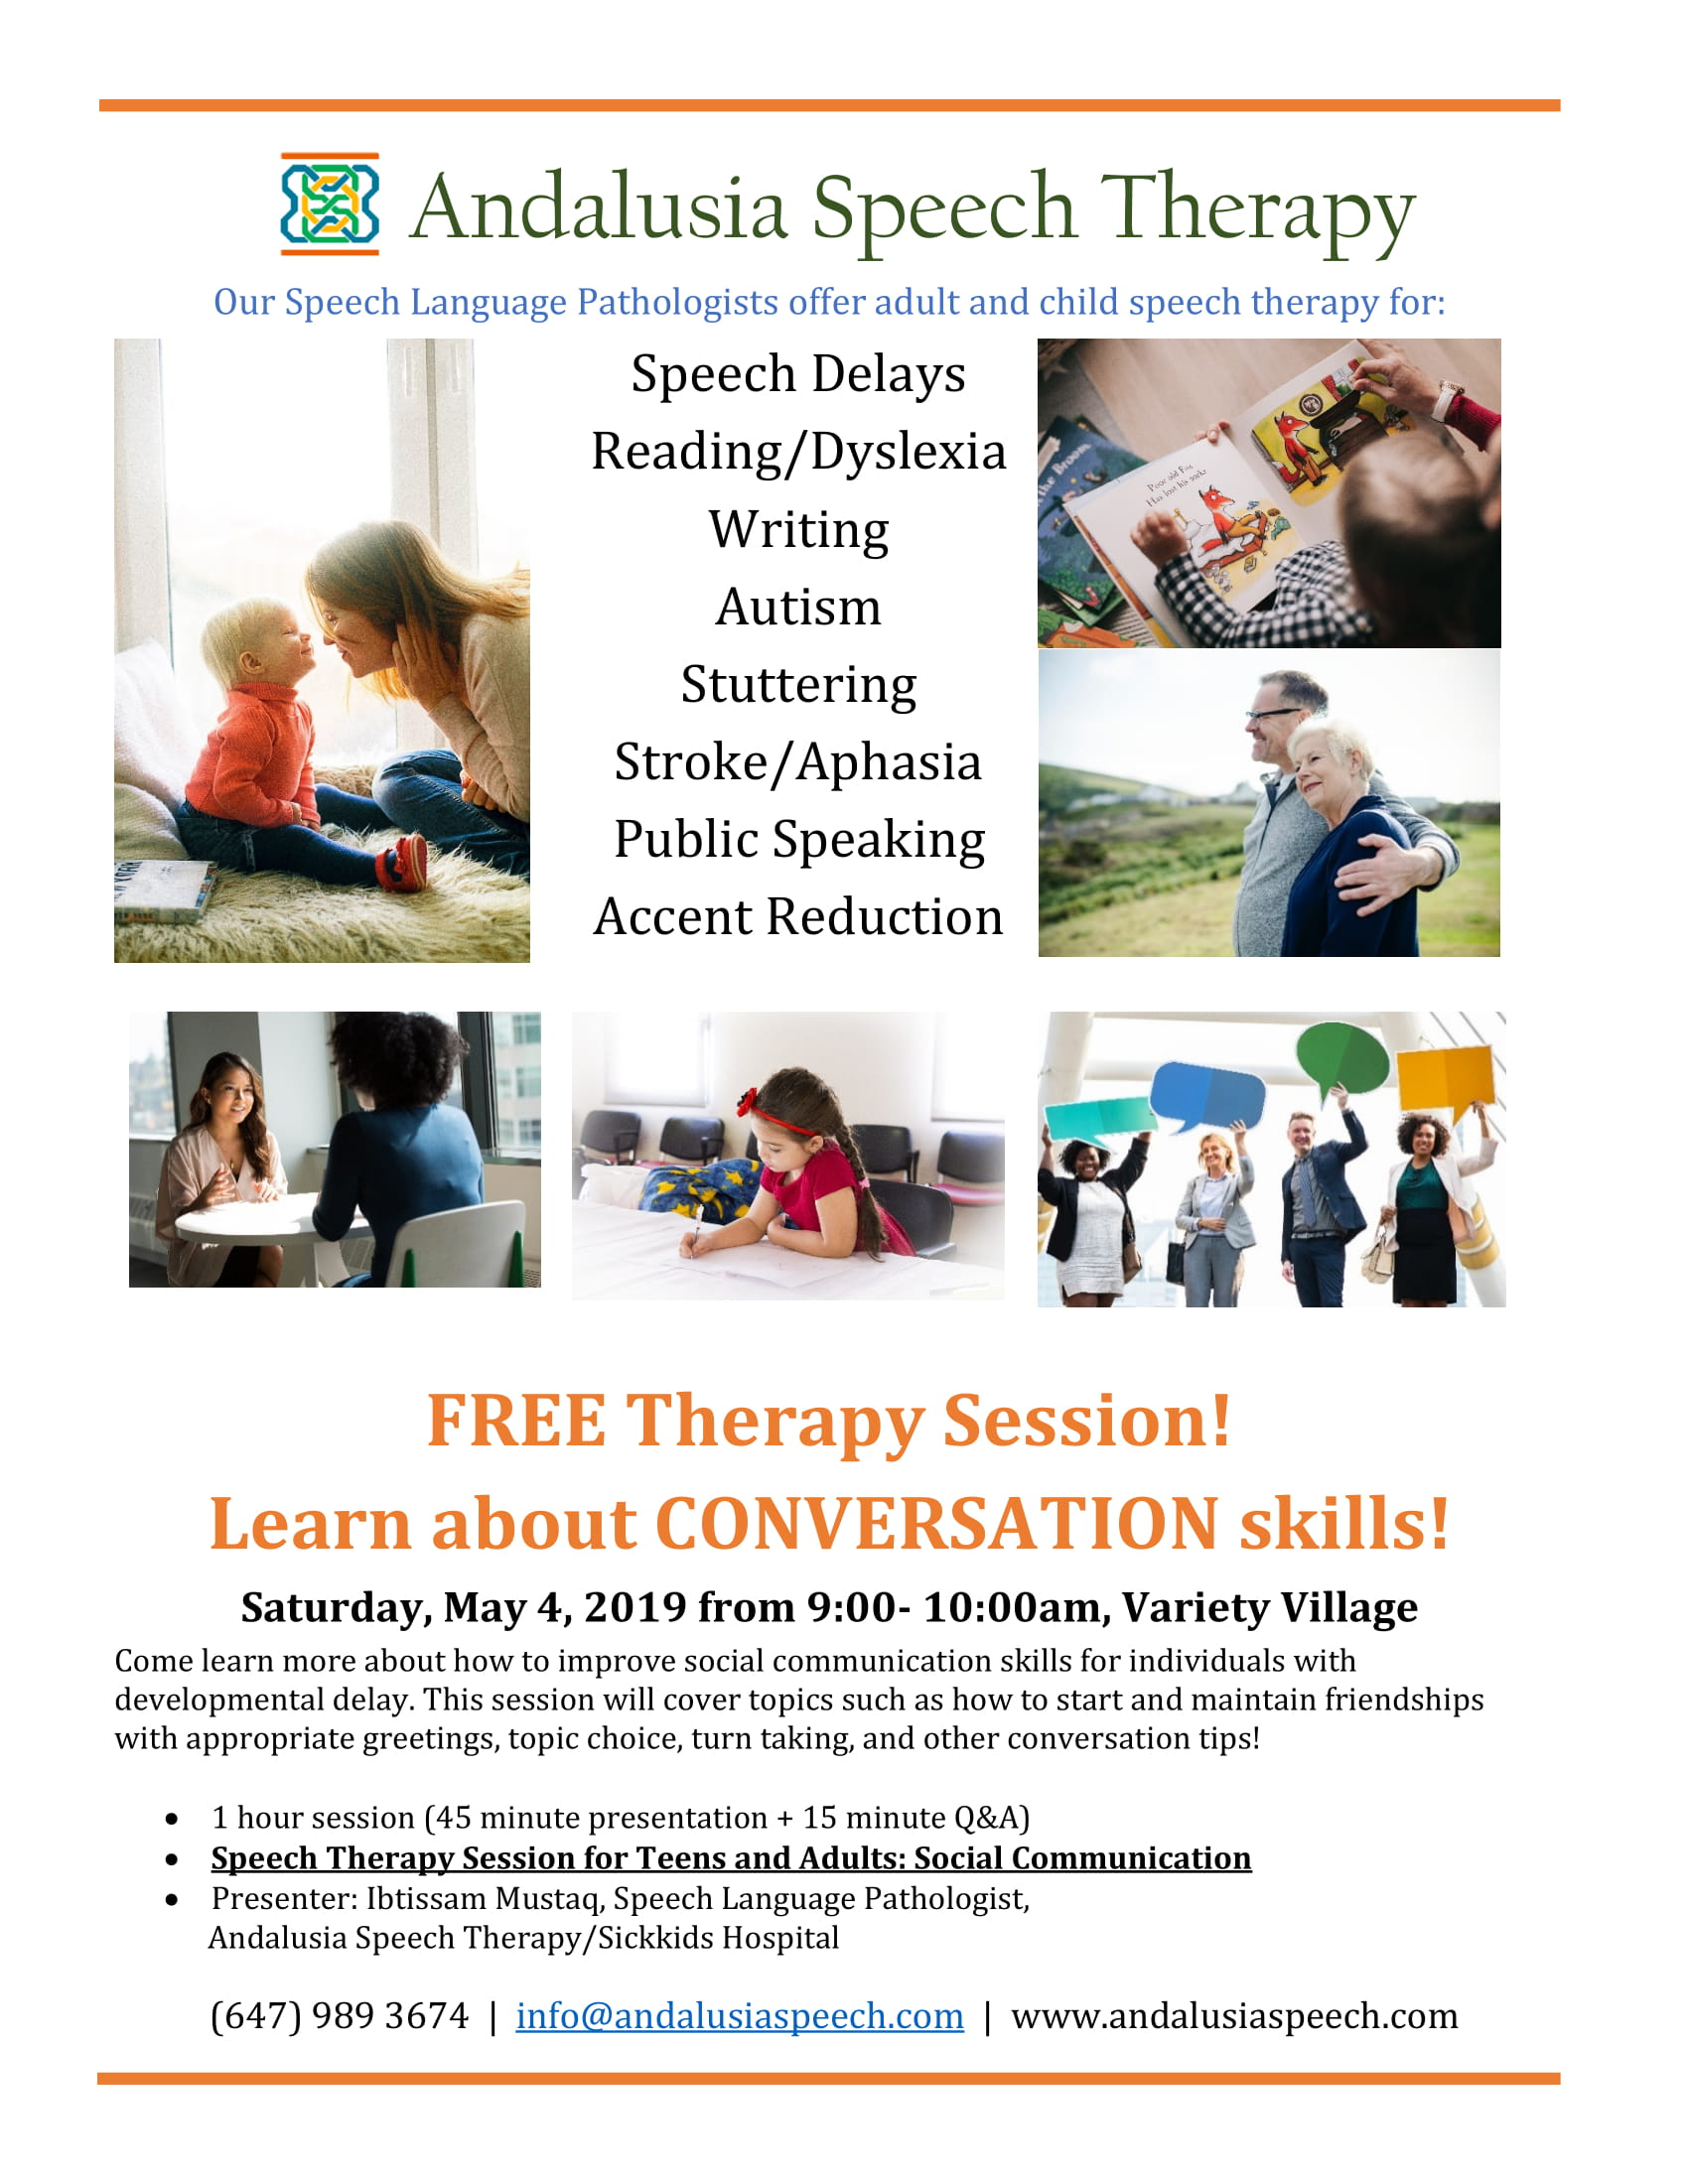 Andalusia Speech Therapy BCS flyer-may 4-1